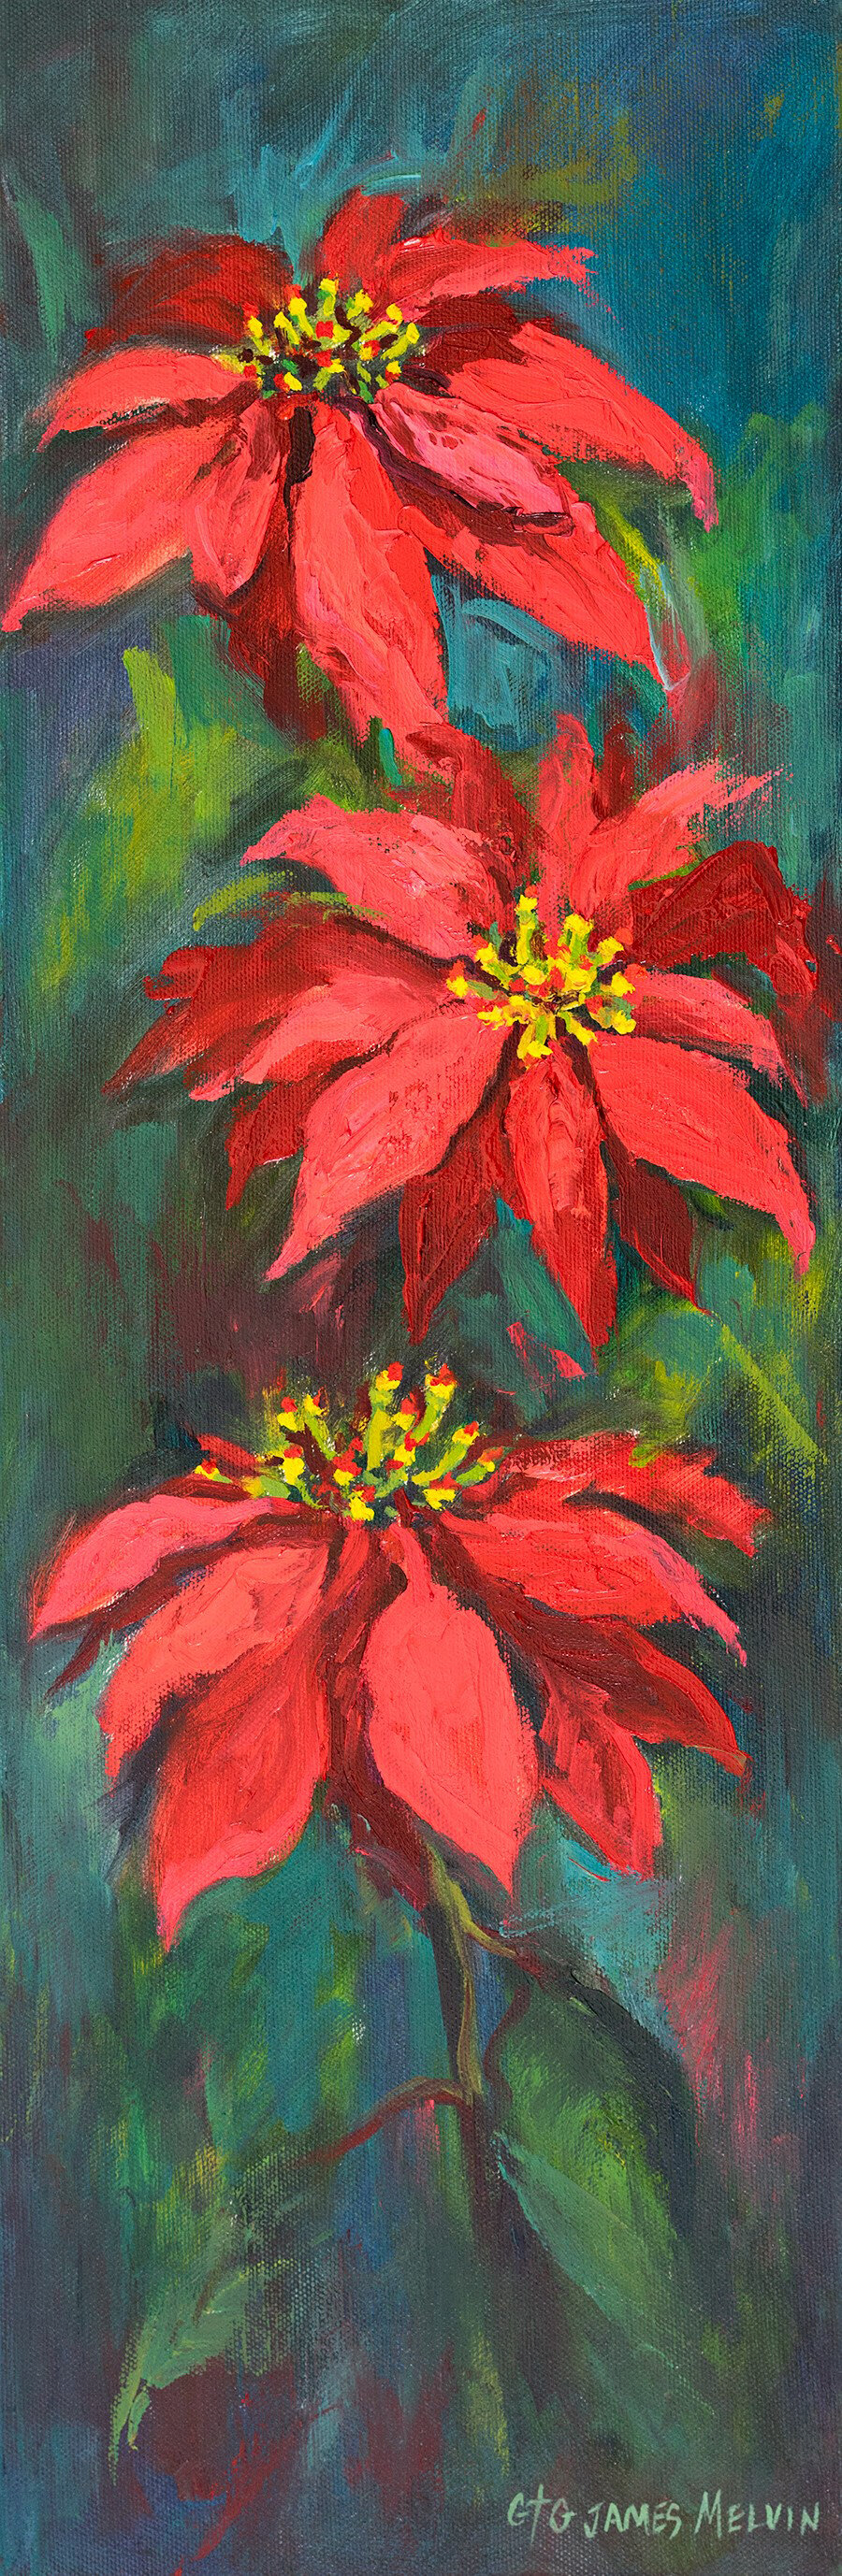 James Melvin, Obx Pointsettias